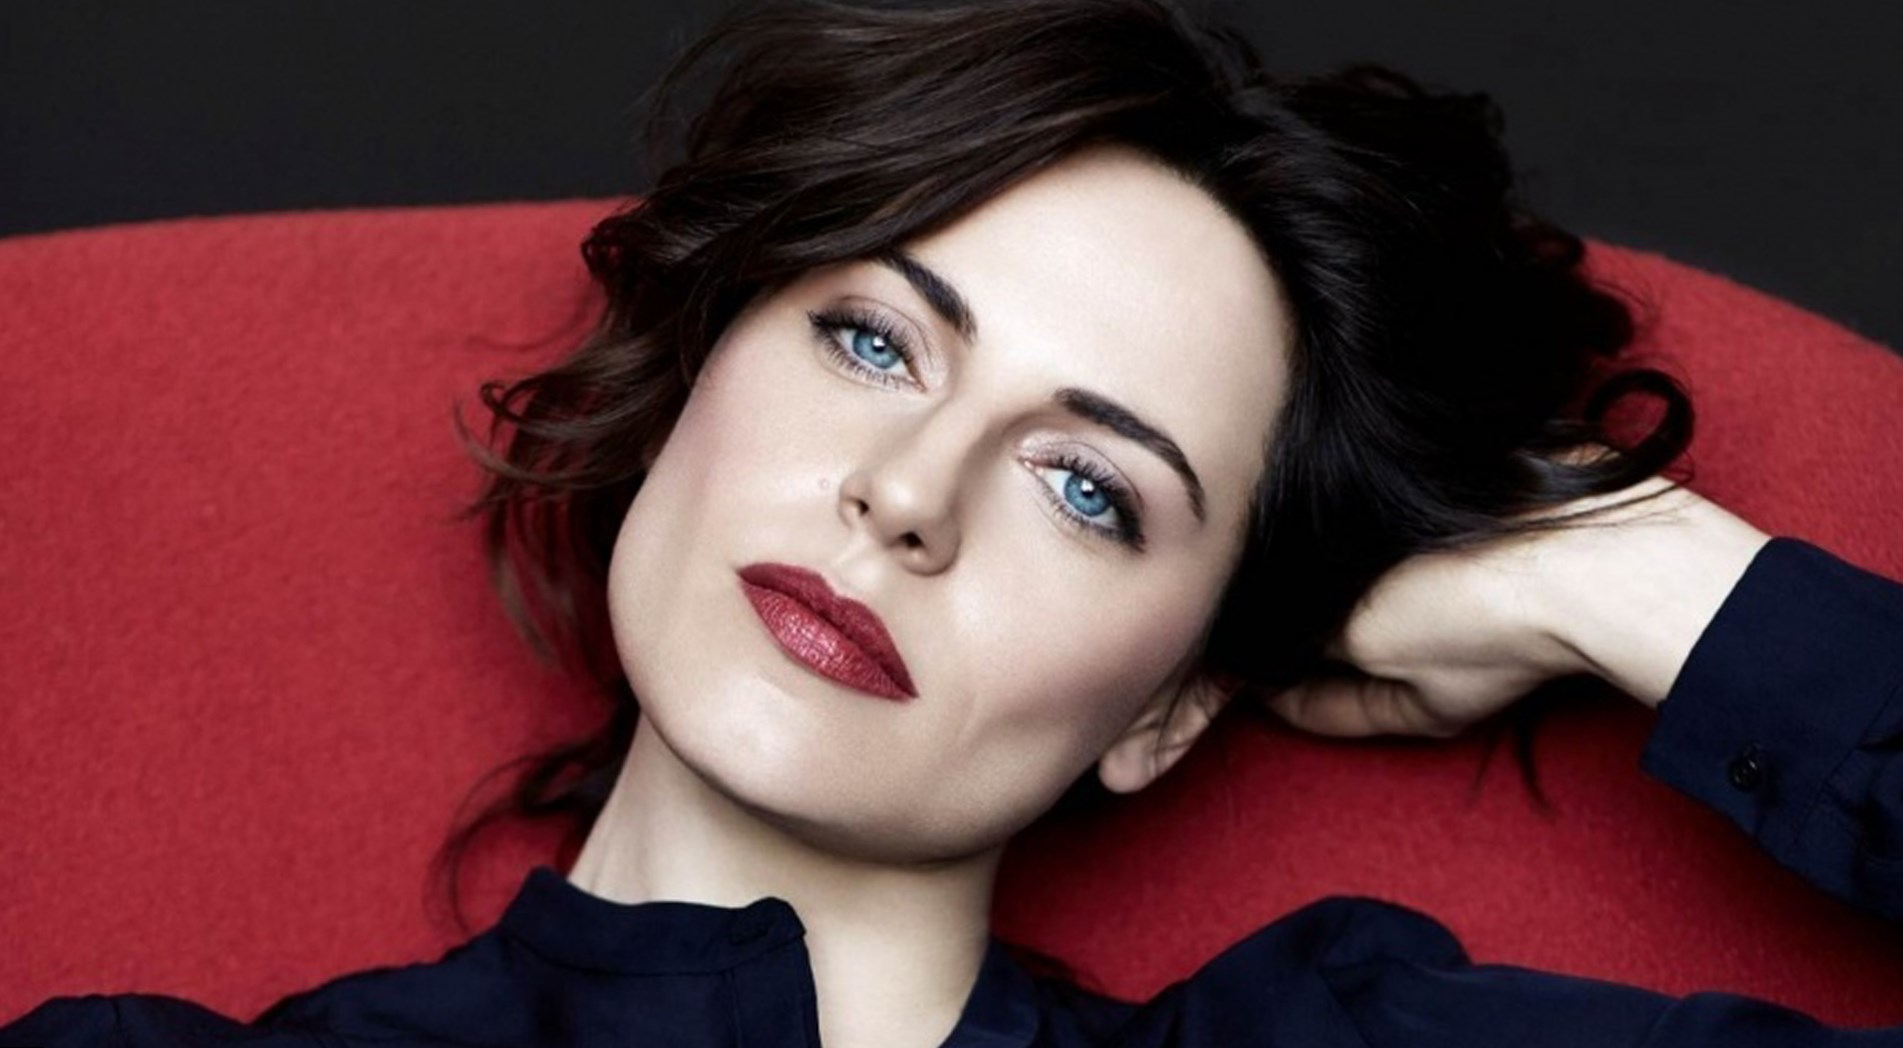 http://starschanges.com/wp-content/uploads/2016/01/Antje-Traue_5-1.jpg